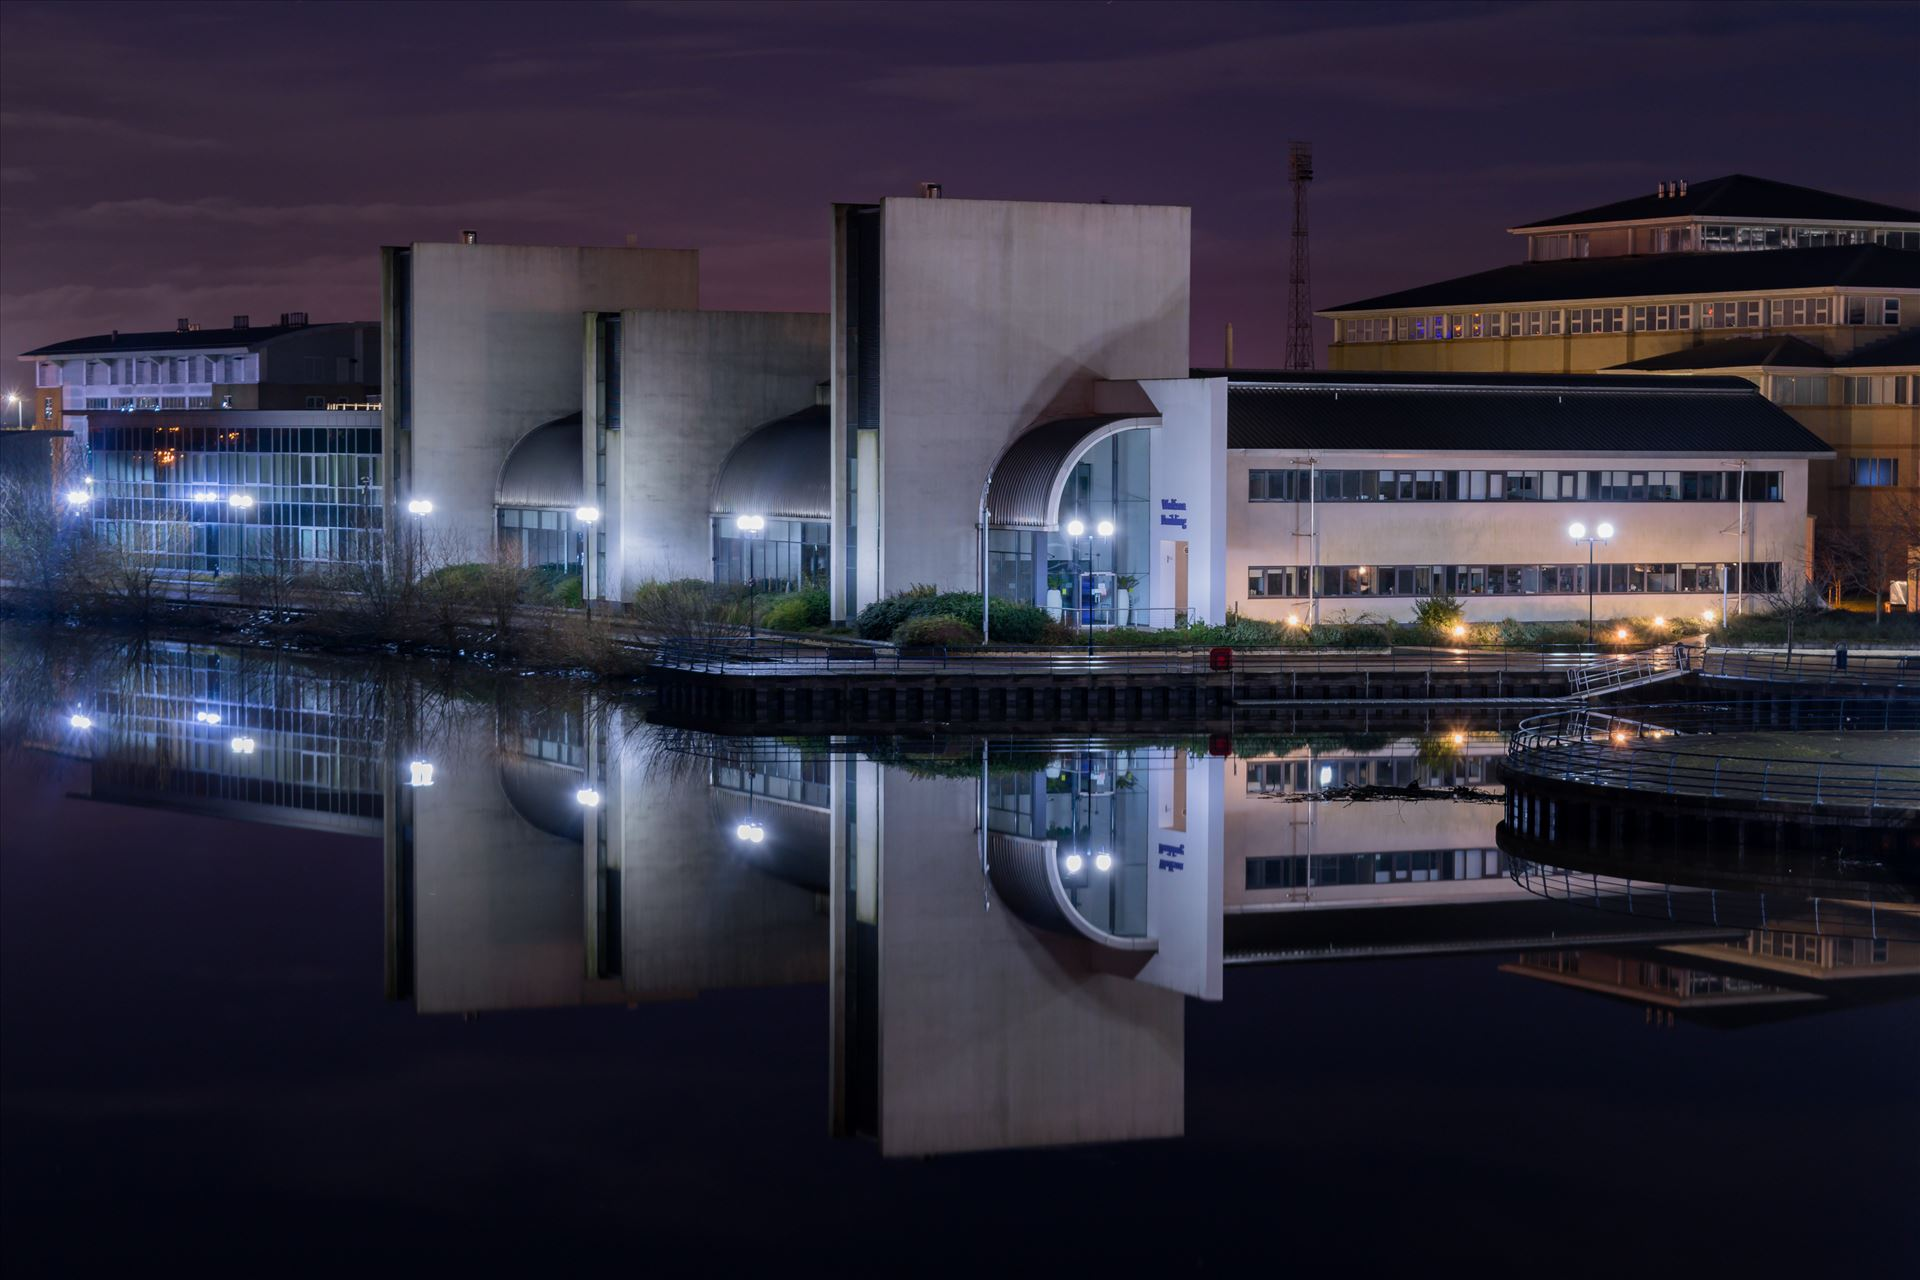 Wolfson Building, Queen\'s Campus, Durham University - Taken on the Infinity Bridge on the 1st January 2018, couldn't believe how flat and still the water was this night by AJ Stoves Photography